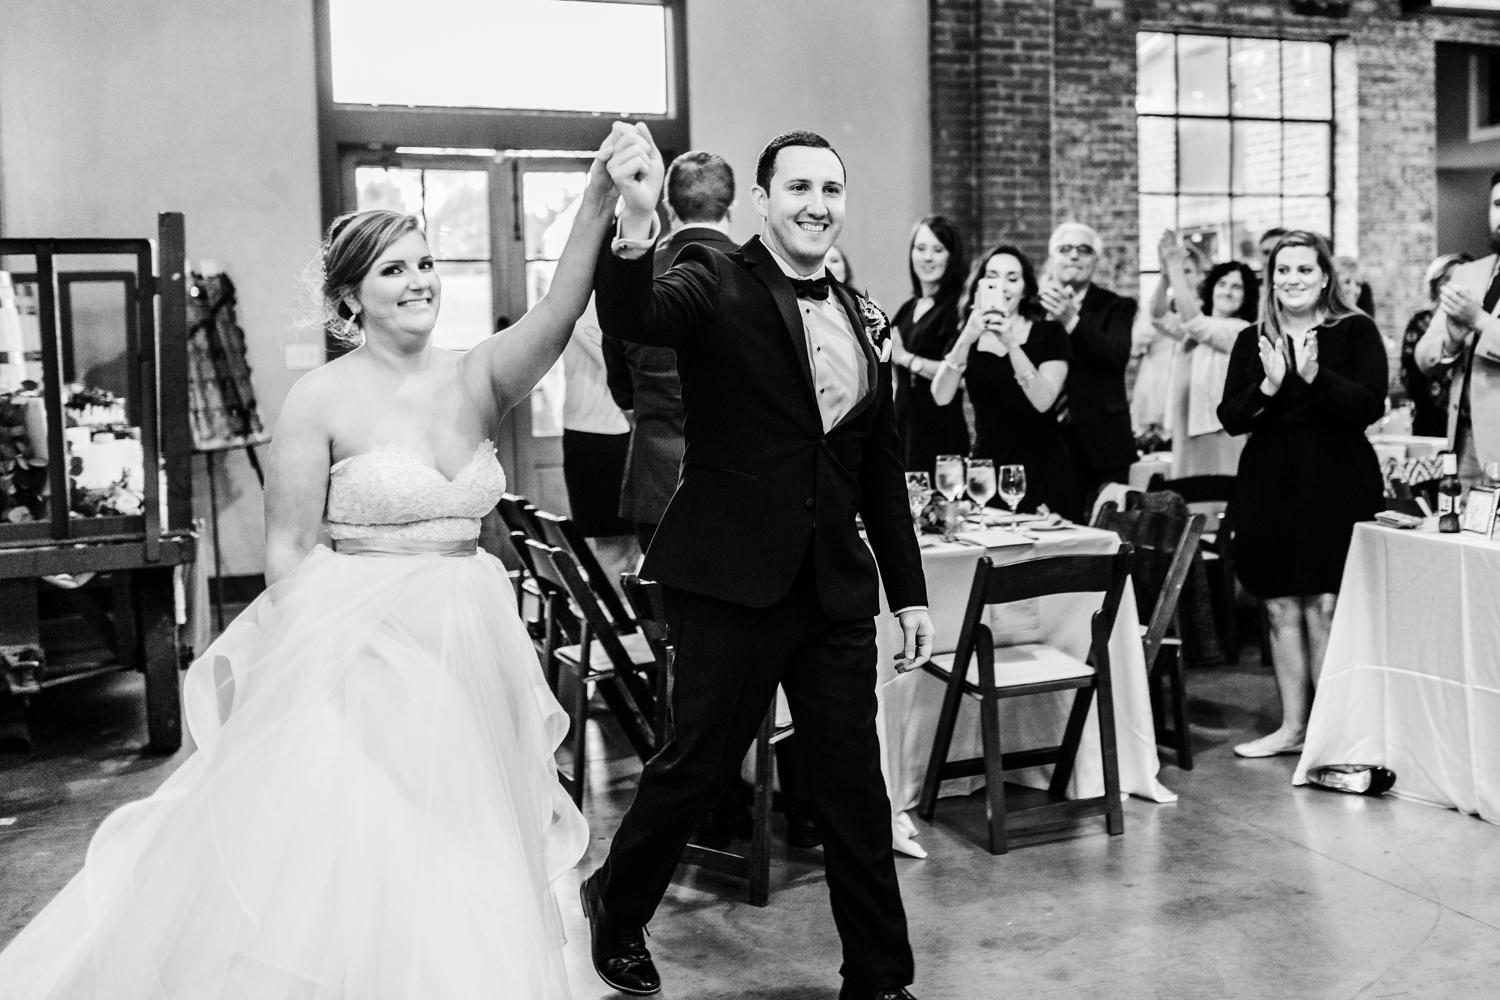 wedding reception into ideas - mcclintock distilling